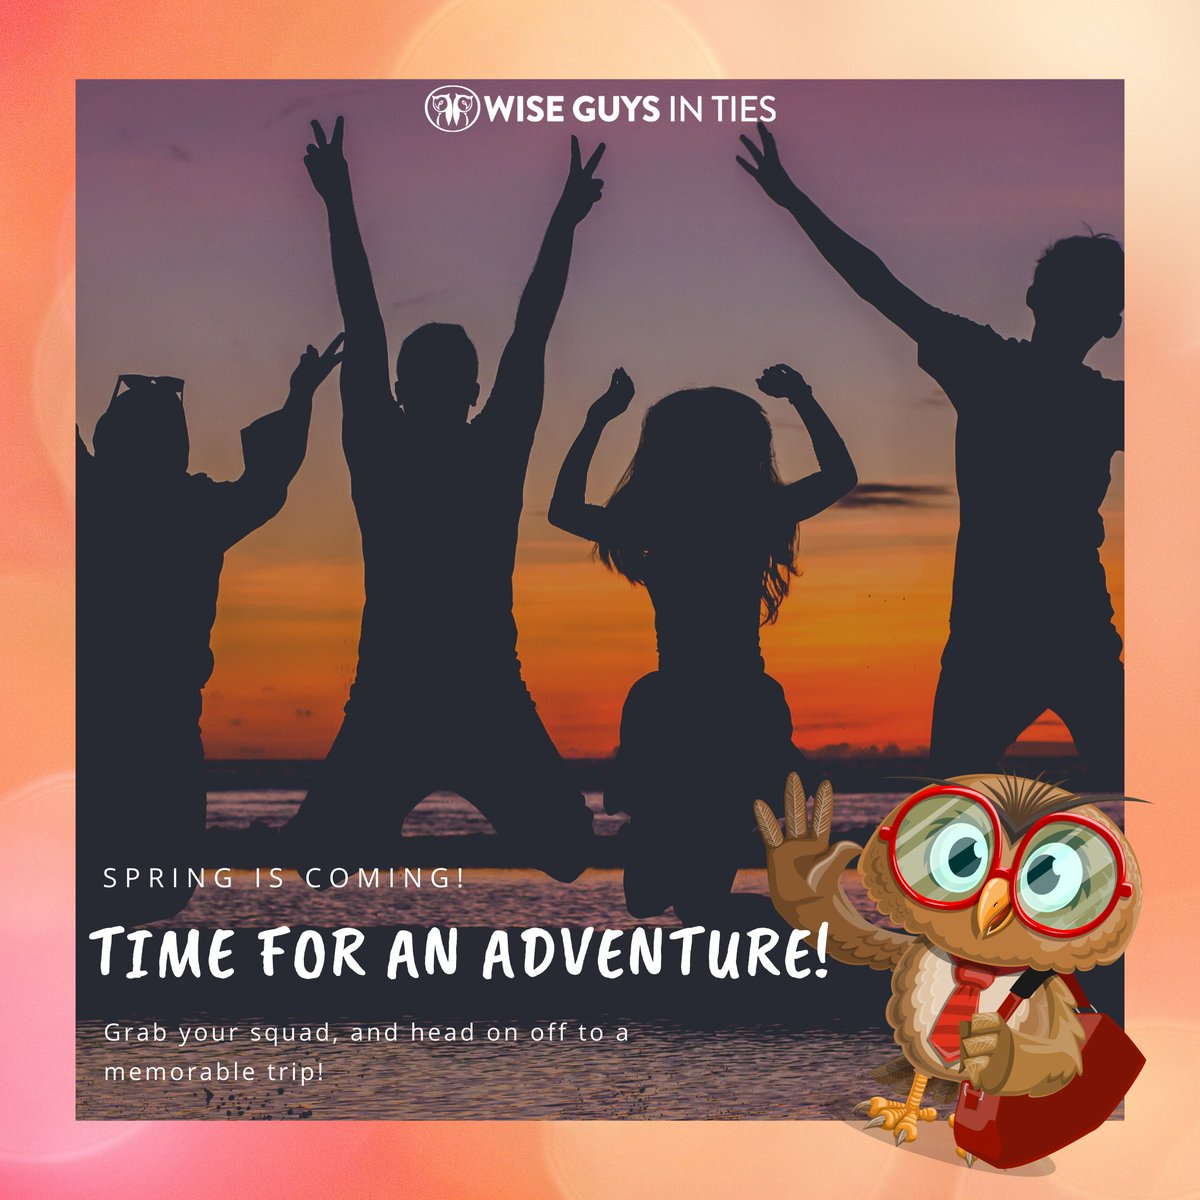 Even in business, you have to find time to have fun 😊🌞  #adventure #travel #nature #explore #love #instagood #beautiful #landscape #travelgram #outdoors #instatravel #liveauthentic #trip #mountains #traveling #life #vacation #beach #view #neverstopexploring #fun #happy